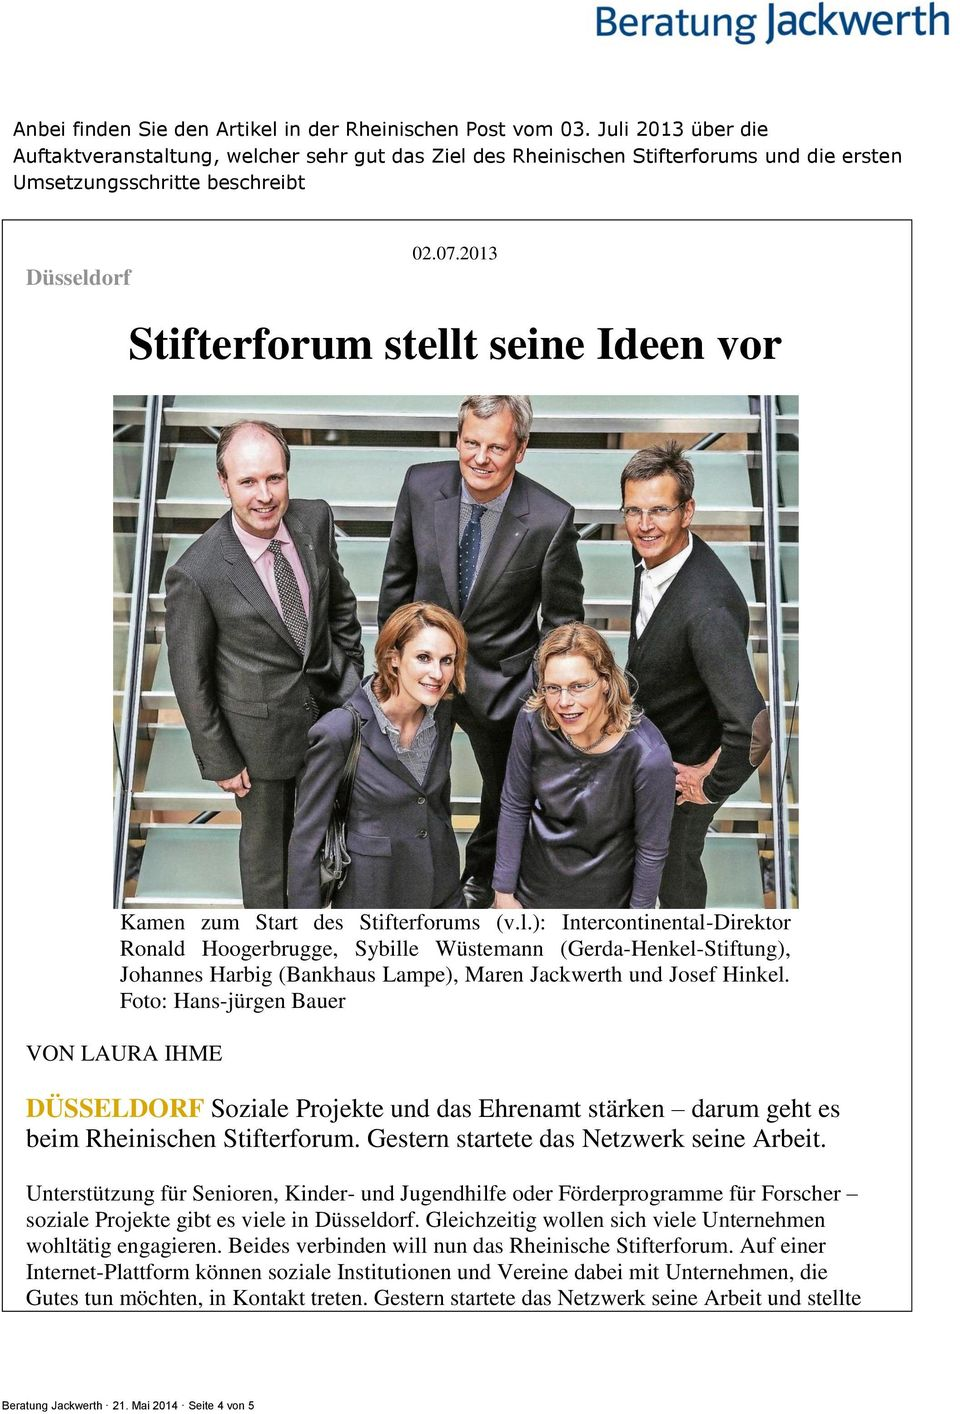 2013 Stifterforum stellt seine Ideen vor Kamen zum Start des Stifterforums (v.l.): Intercontinental-Direktor Ronald Hoogerbrugge, Sybille Wüstemann (Gerda-Henkel-Stiftung), Johannes Harbig (Bankhaus Lampe), Maren Jackwerth und Josef Hinkel.